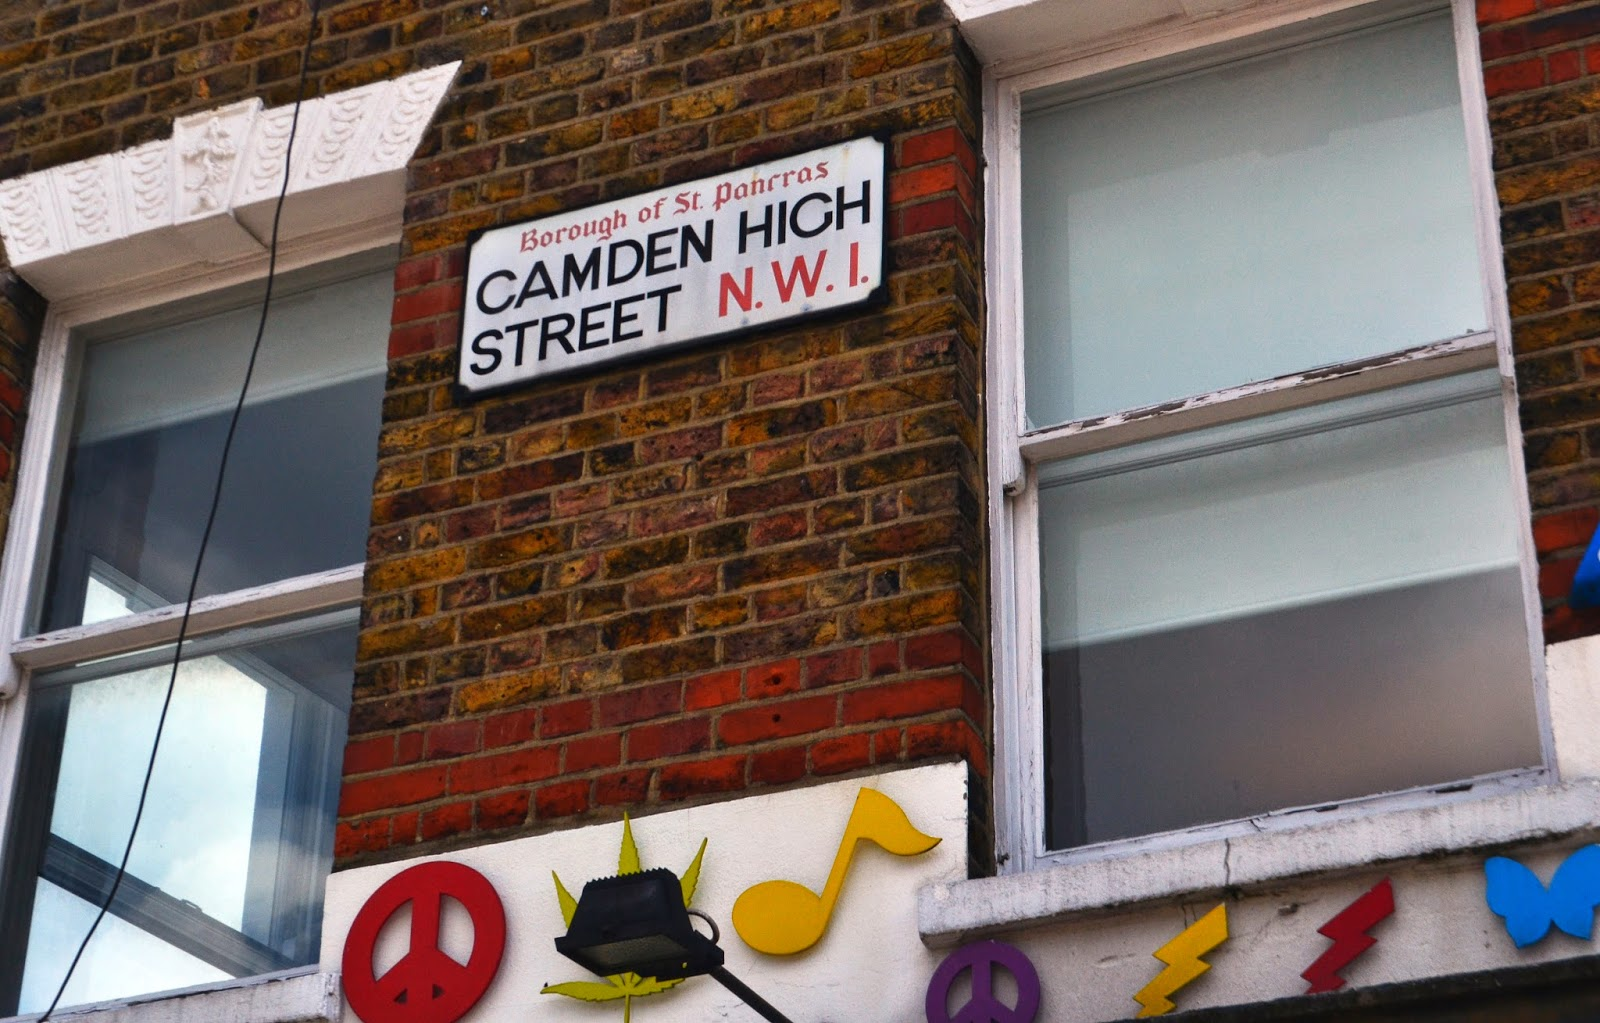 Camden high street sign on the wall of a house